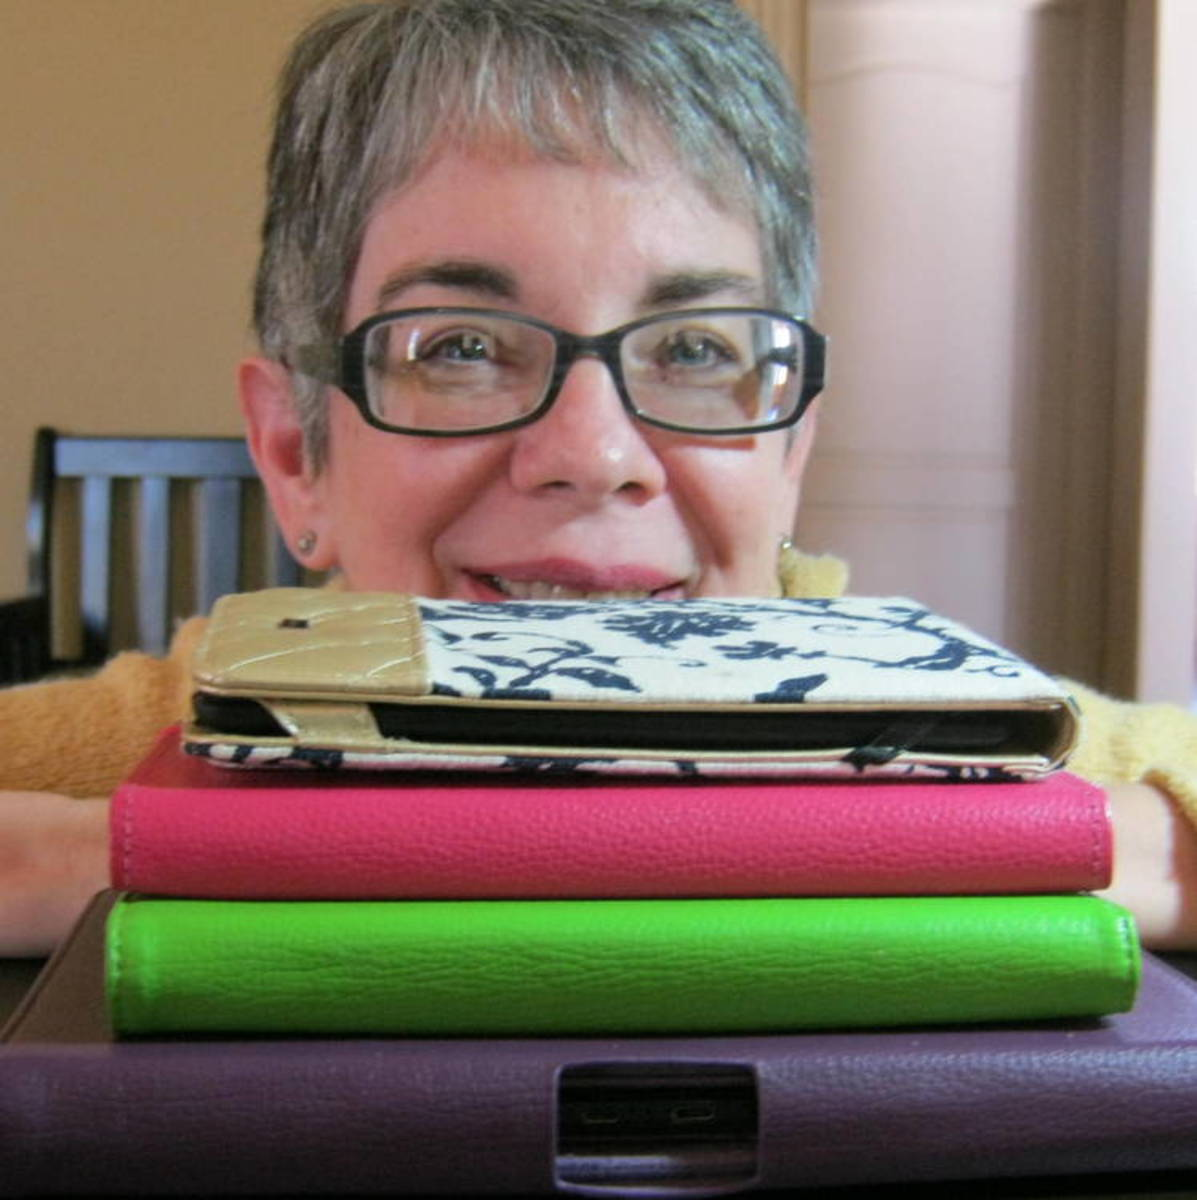 The author with her stack of Kindle readers and Fire tablets.